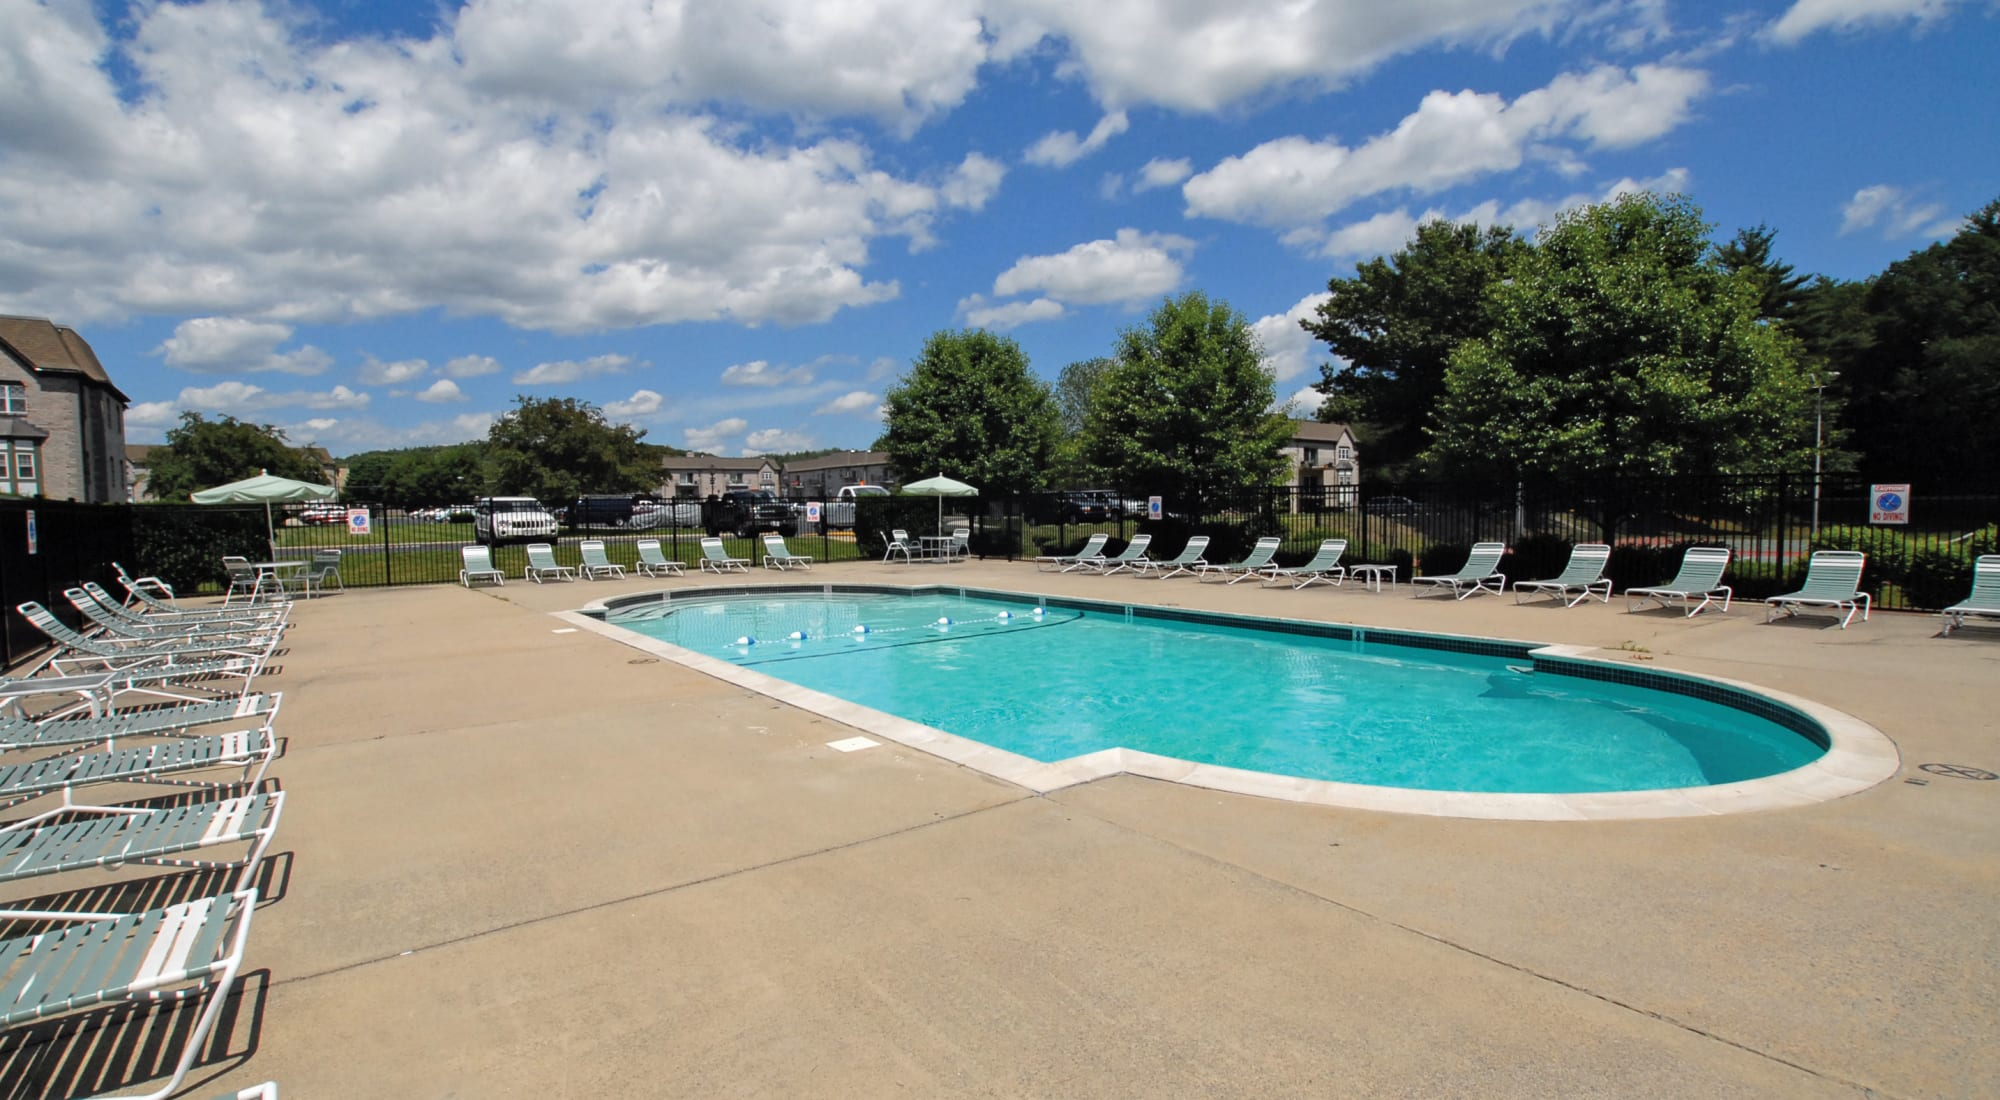 Amenities at Meadows at Marlborough in Marlborough, Massachusetts